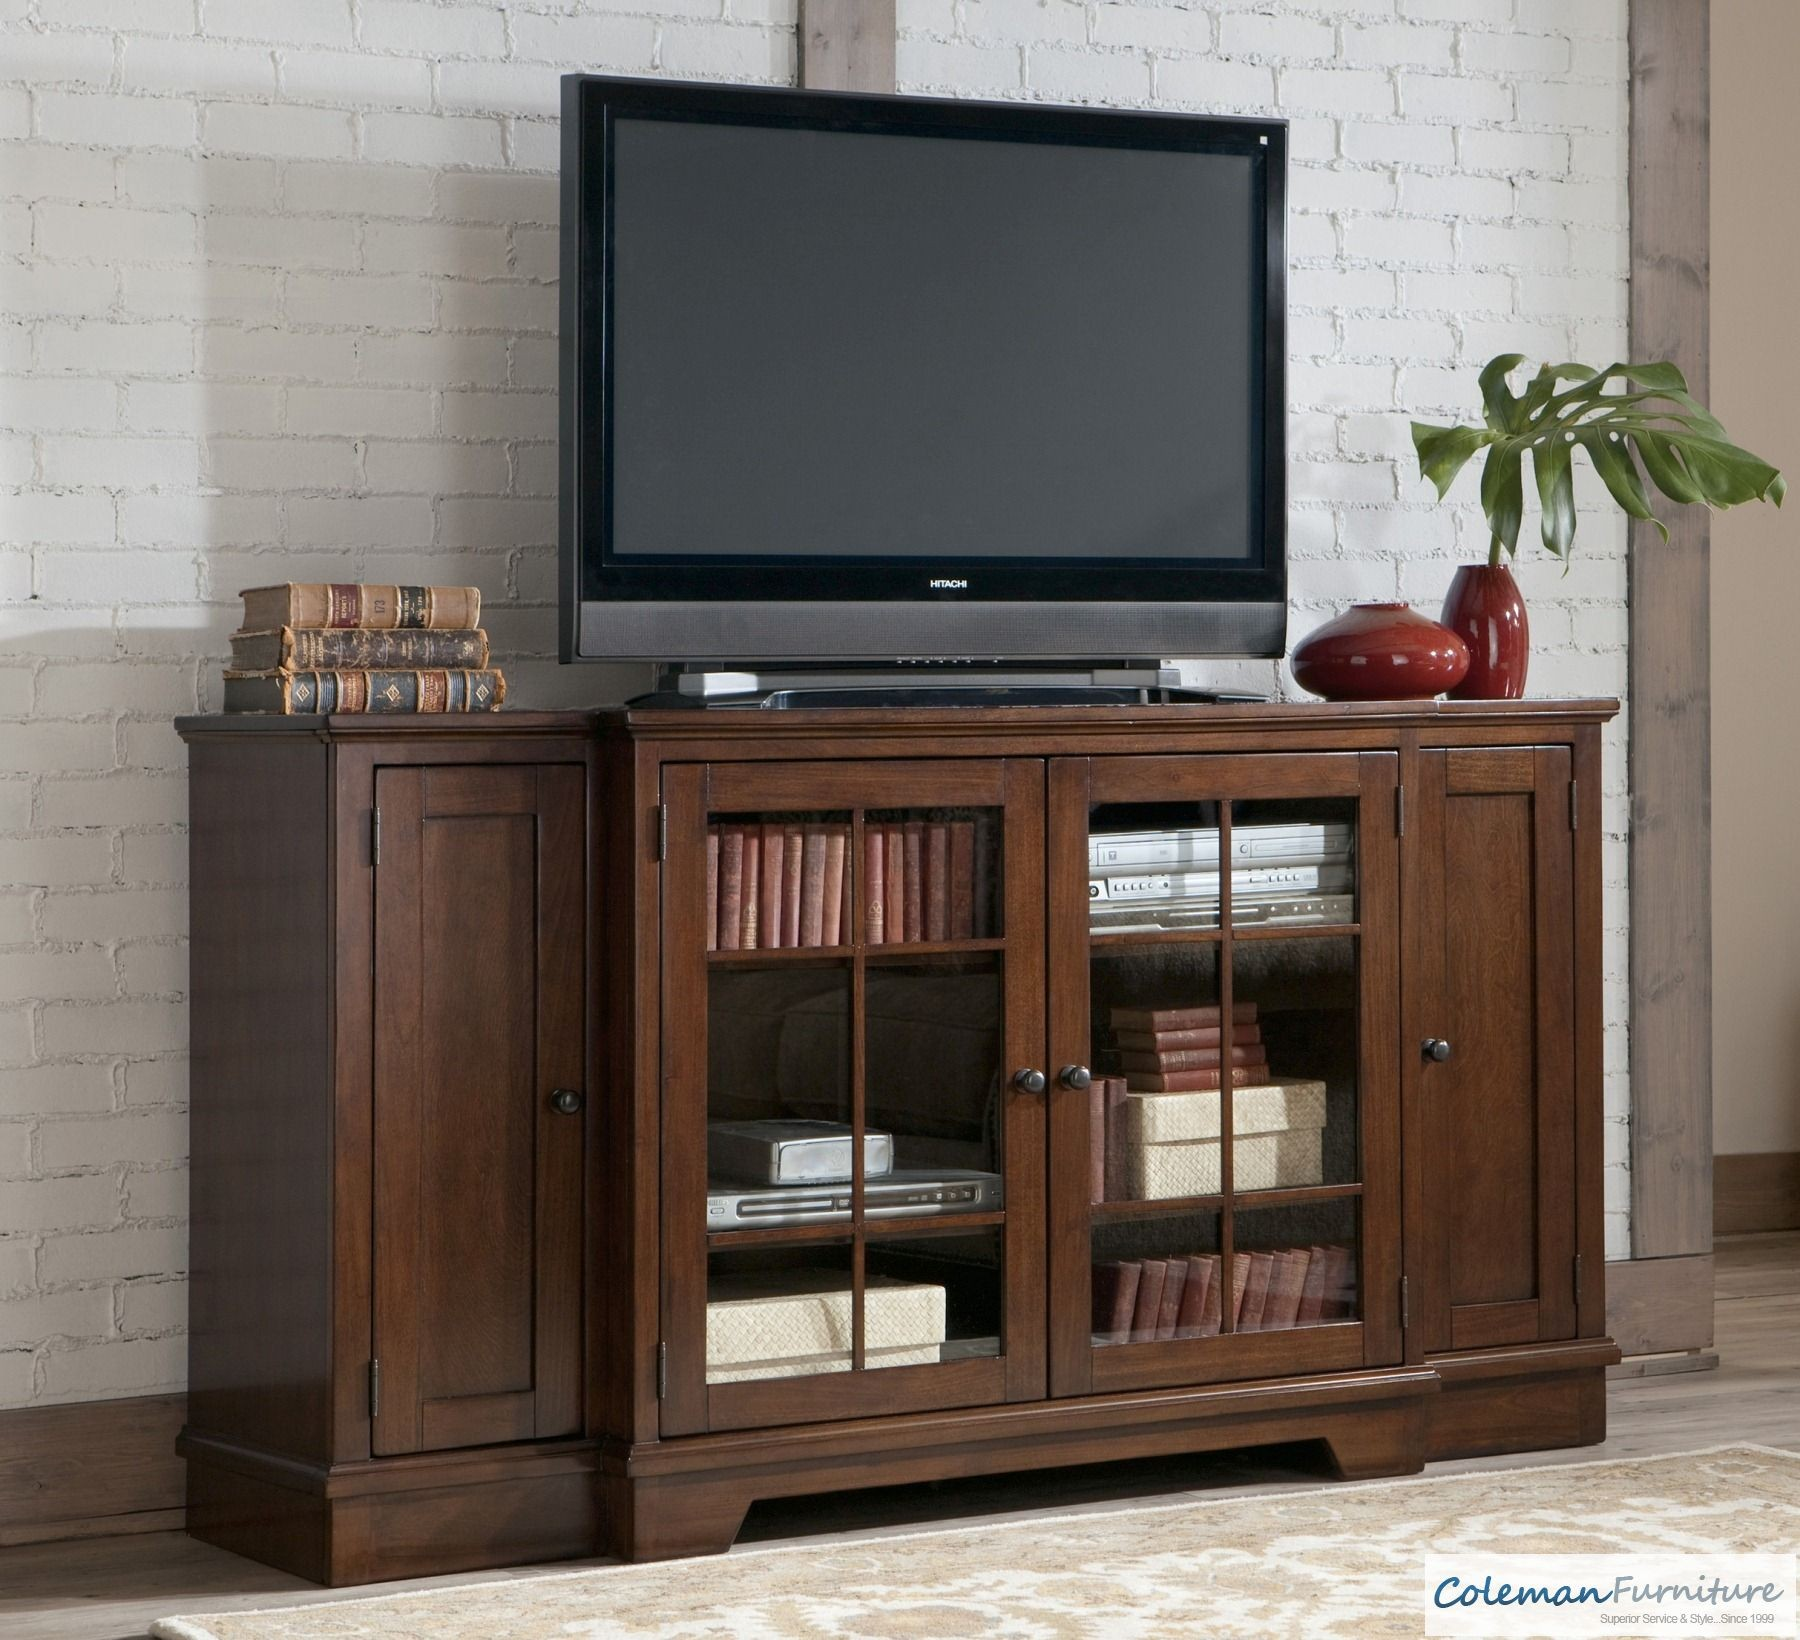 Hodgenville Tall Extra Large Tv Stand From Ashley W684 48 Coleman Furniture